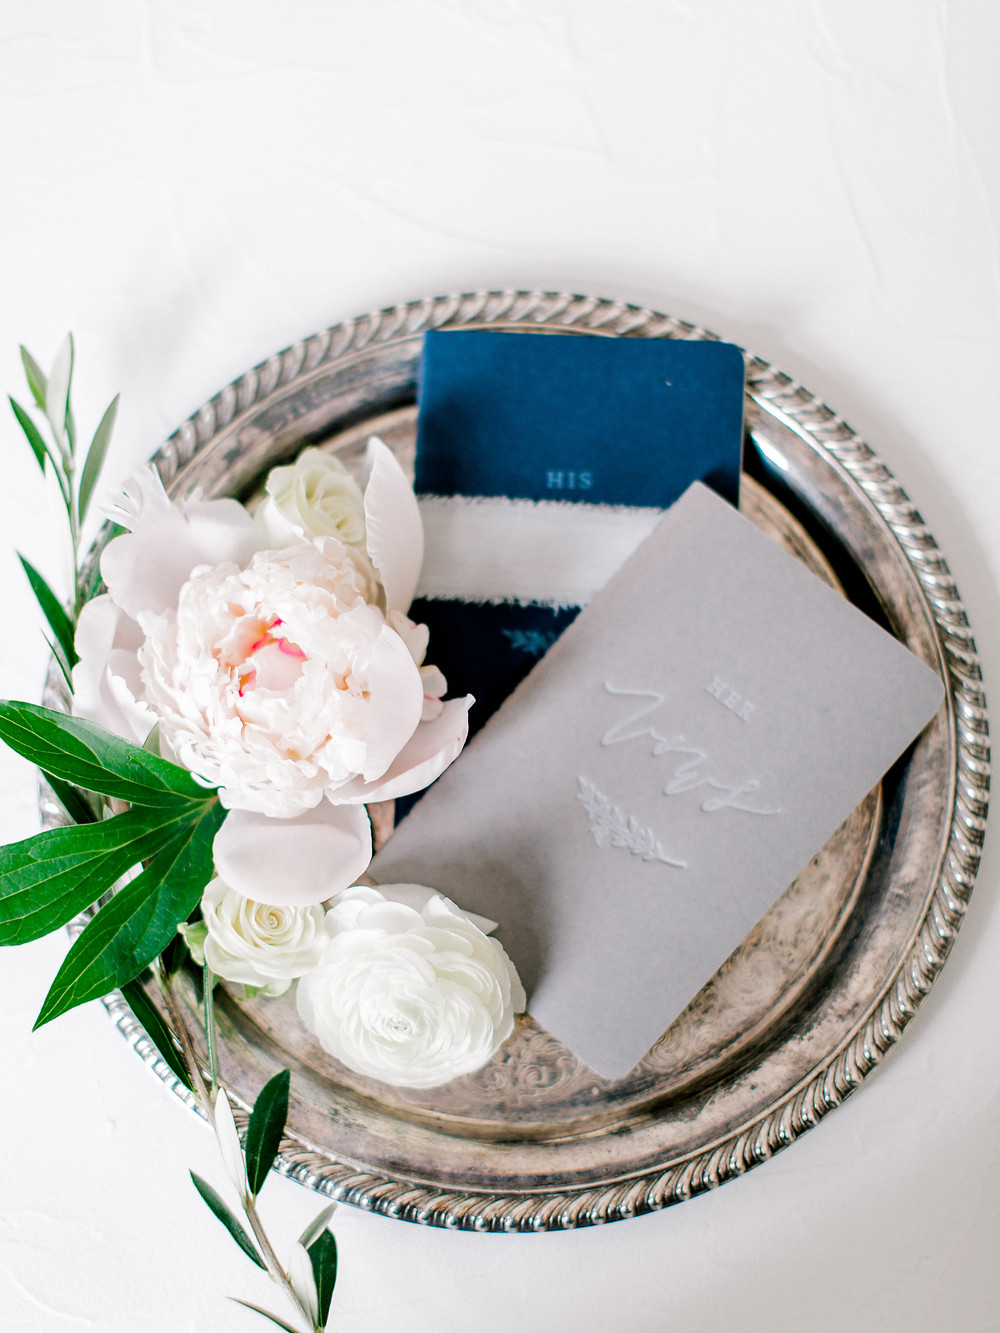 Silver tray displaying all the details; flowers, invitations and more